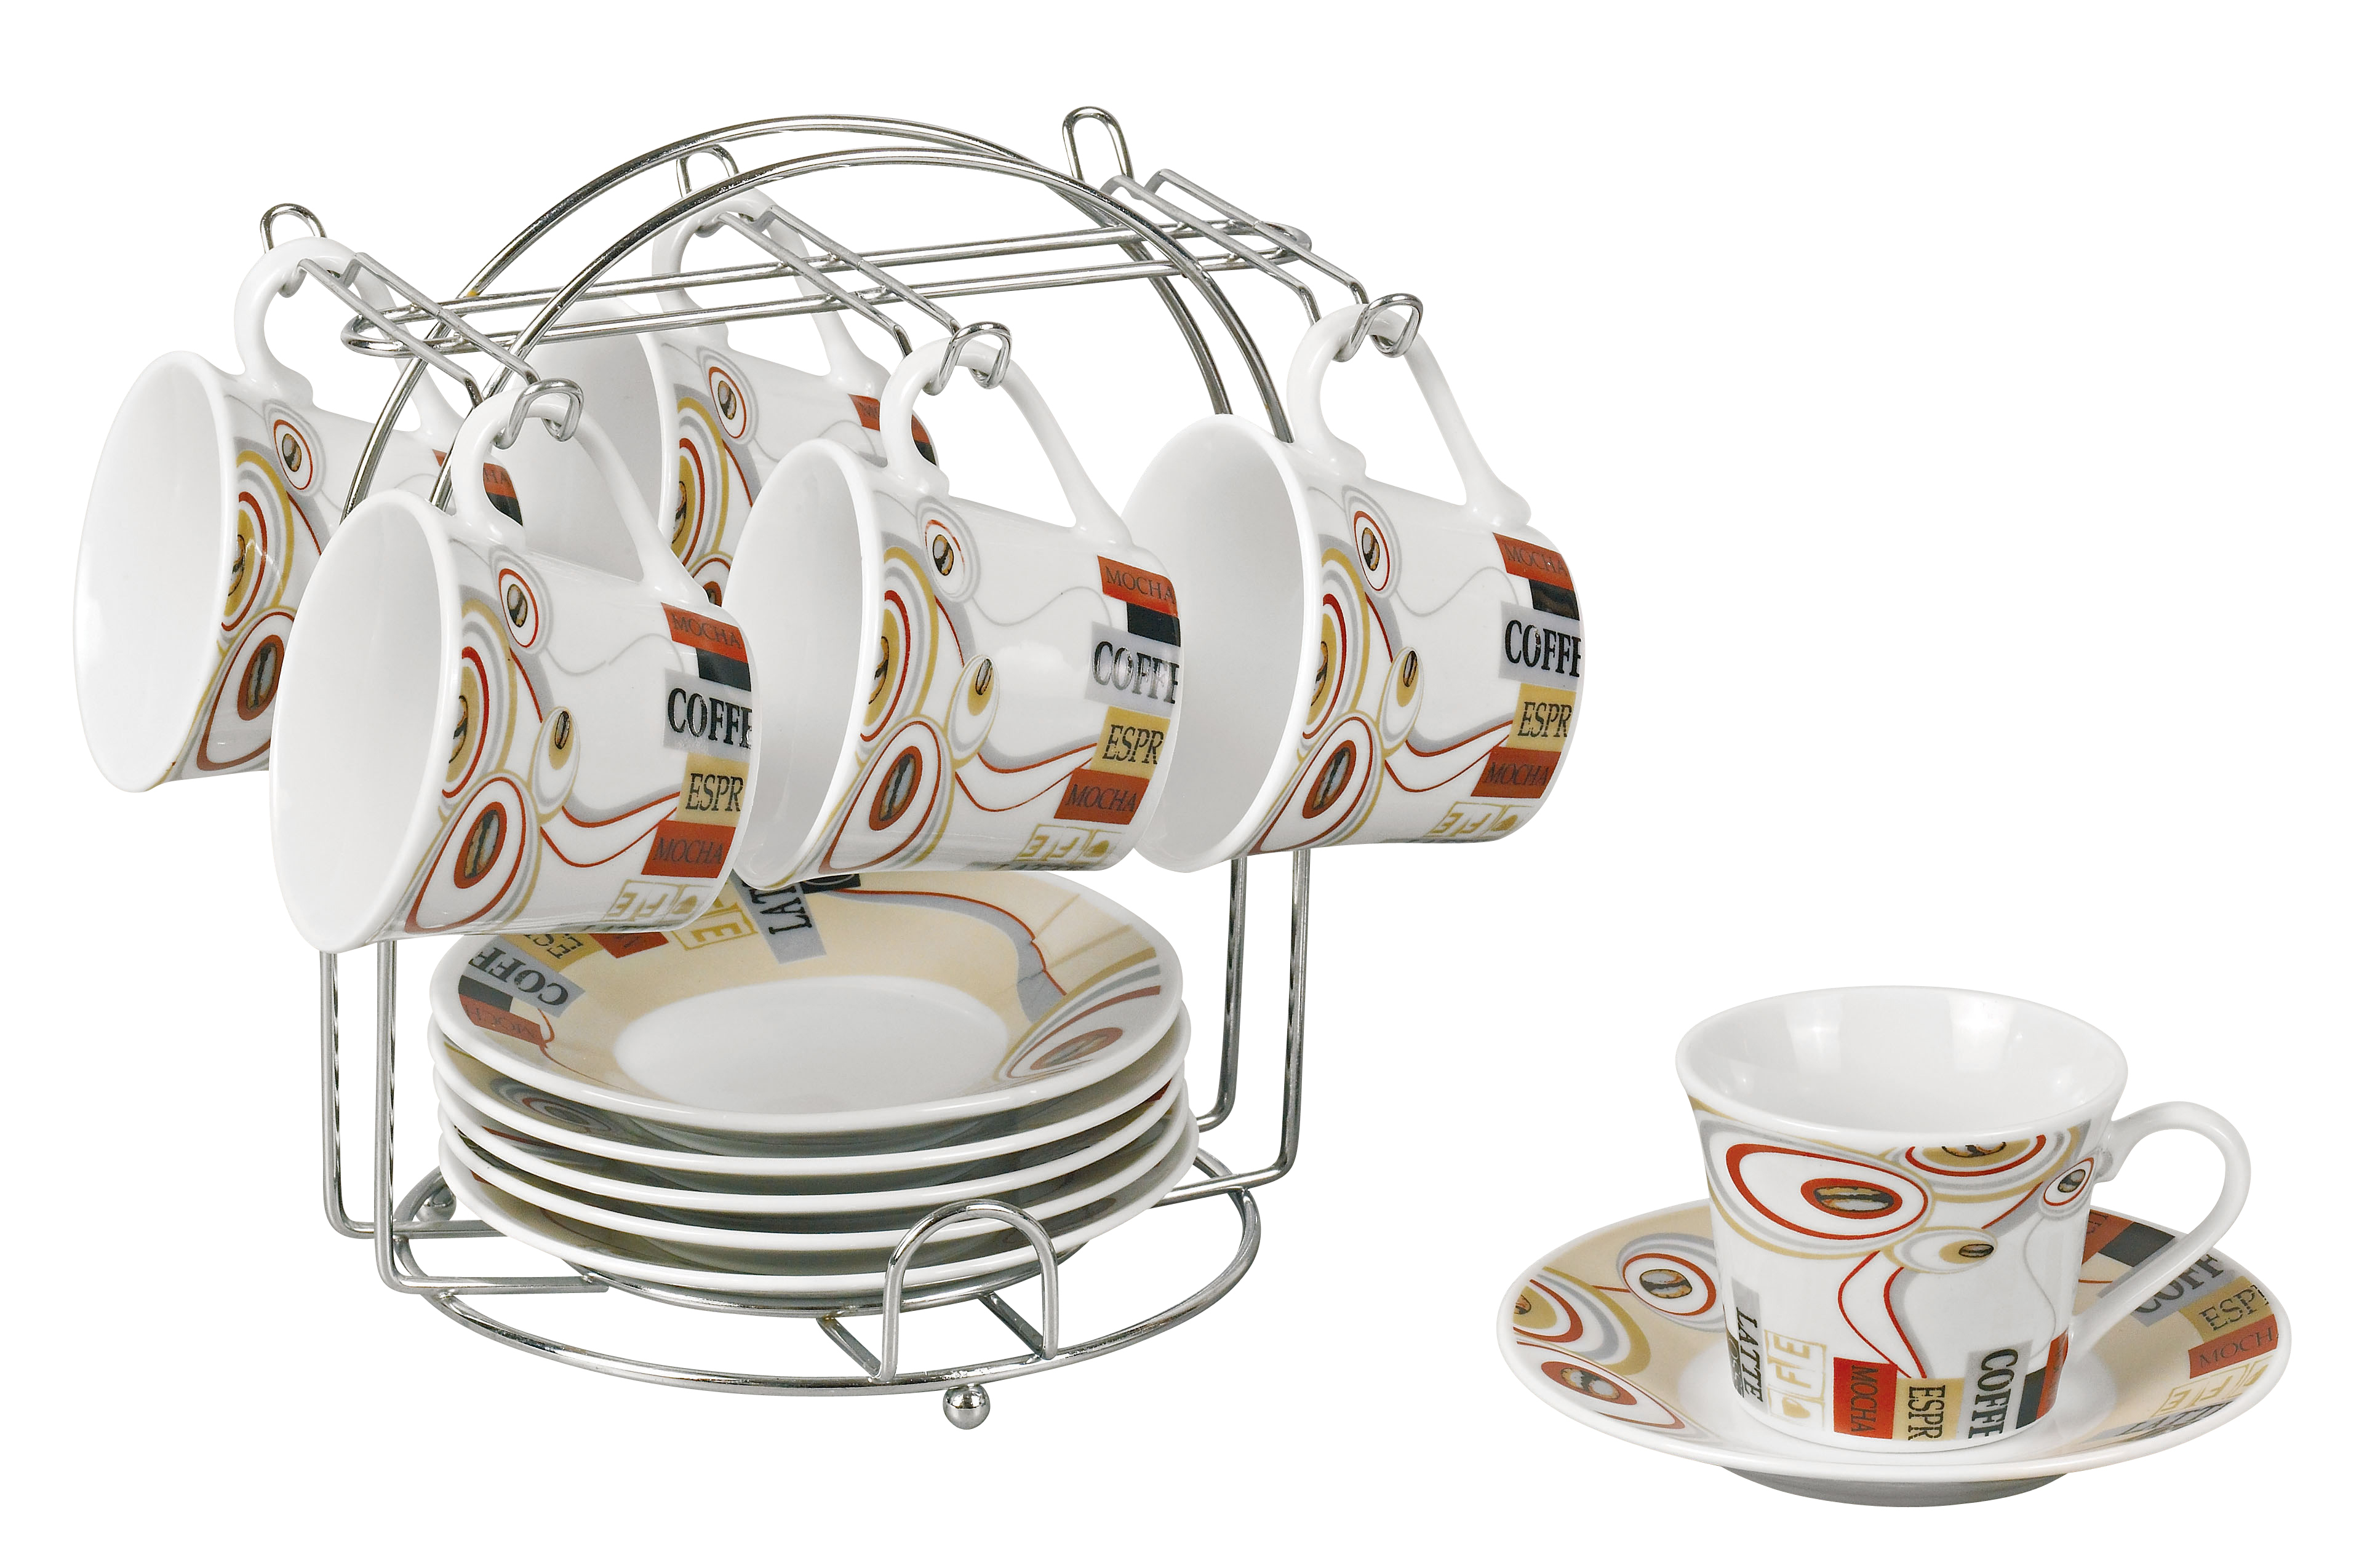 Set Of 6 Espresso Cups On Metal Stand